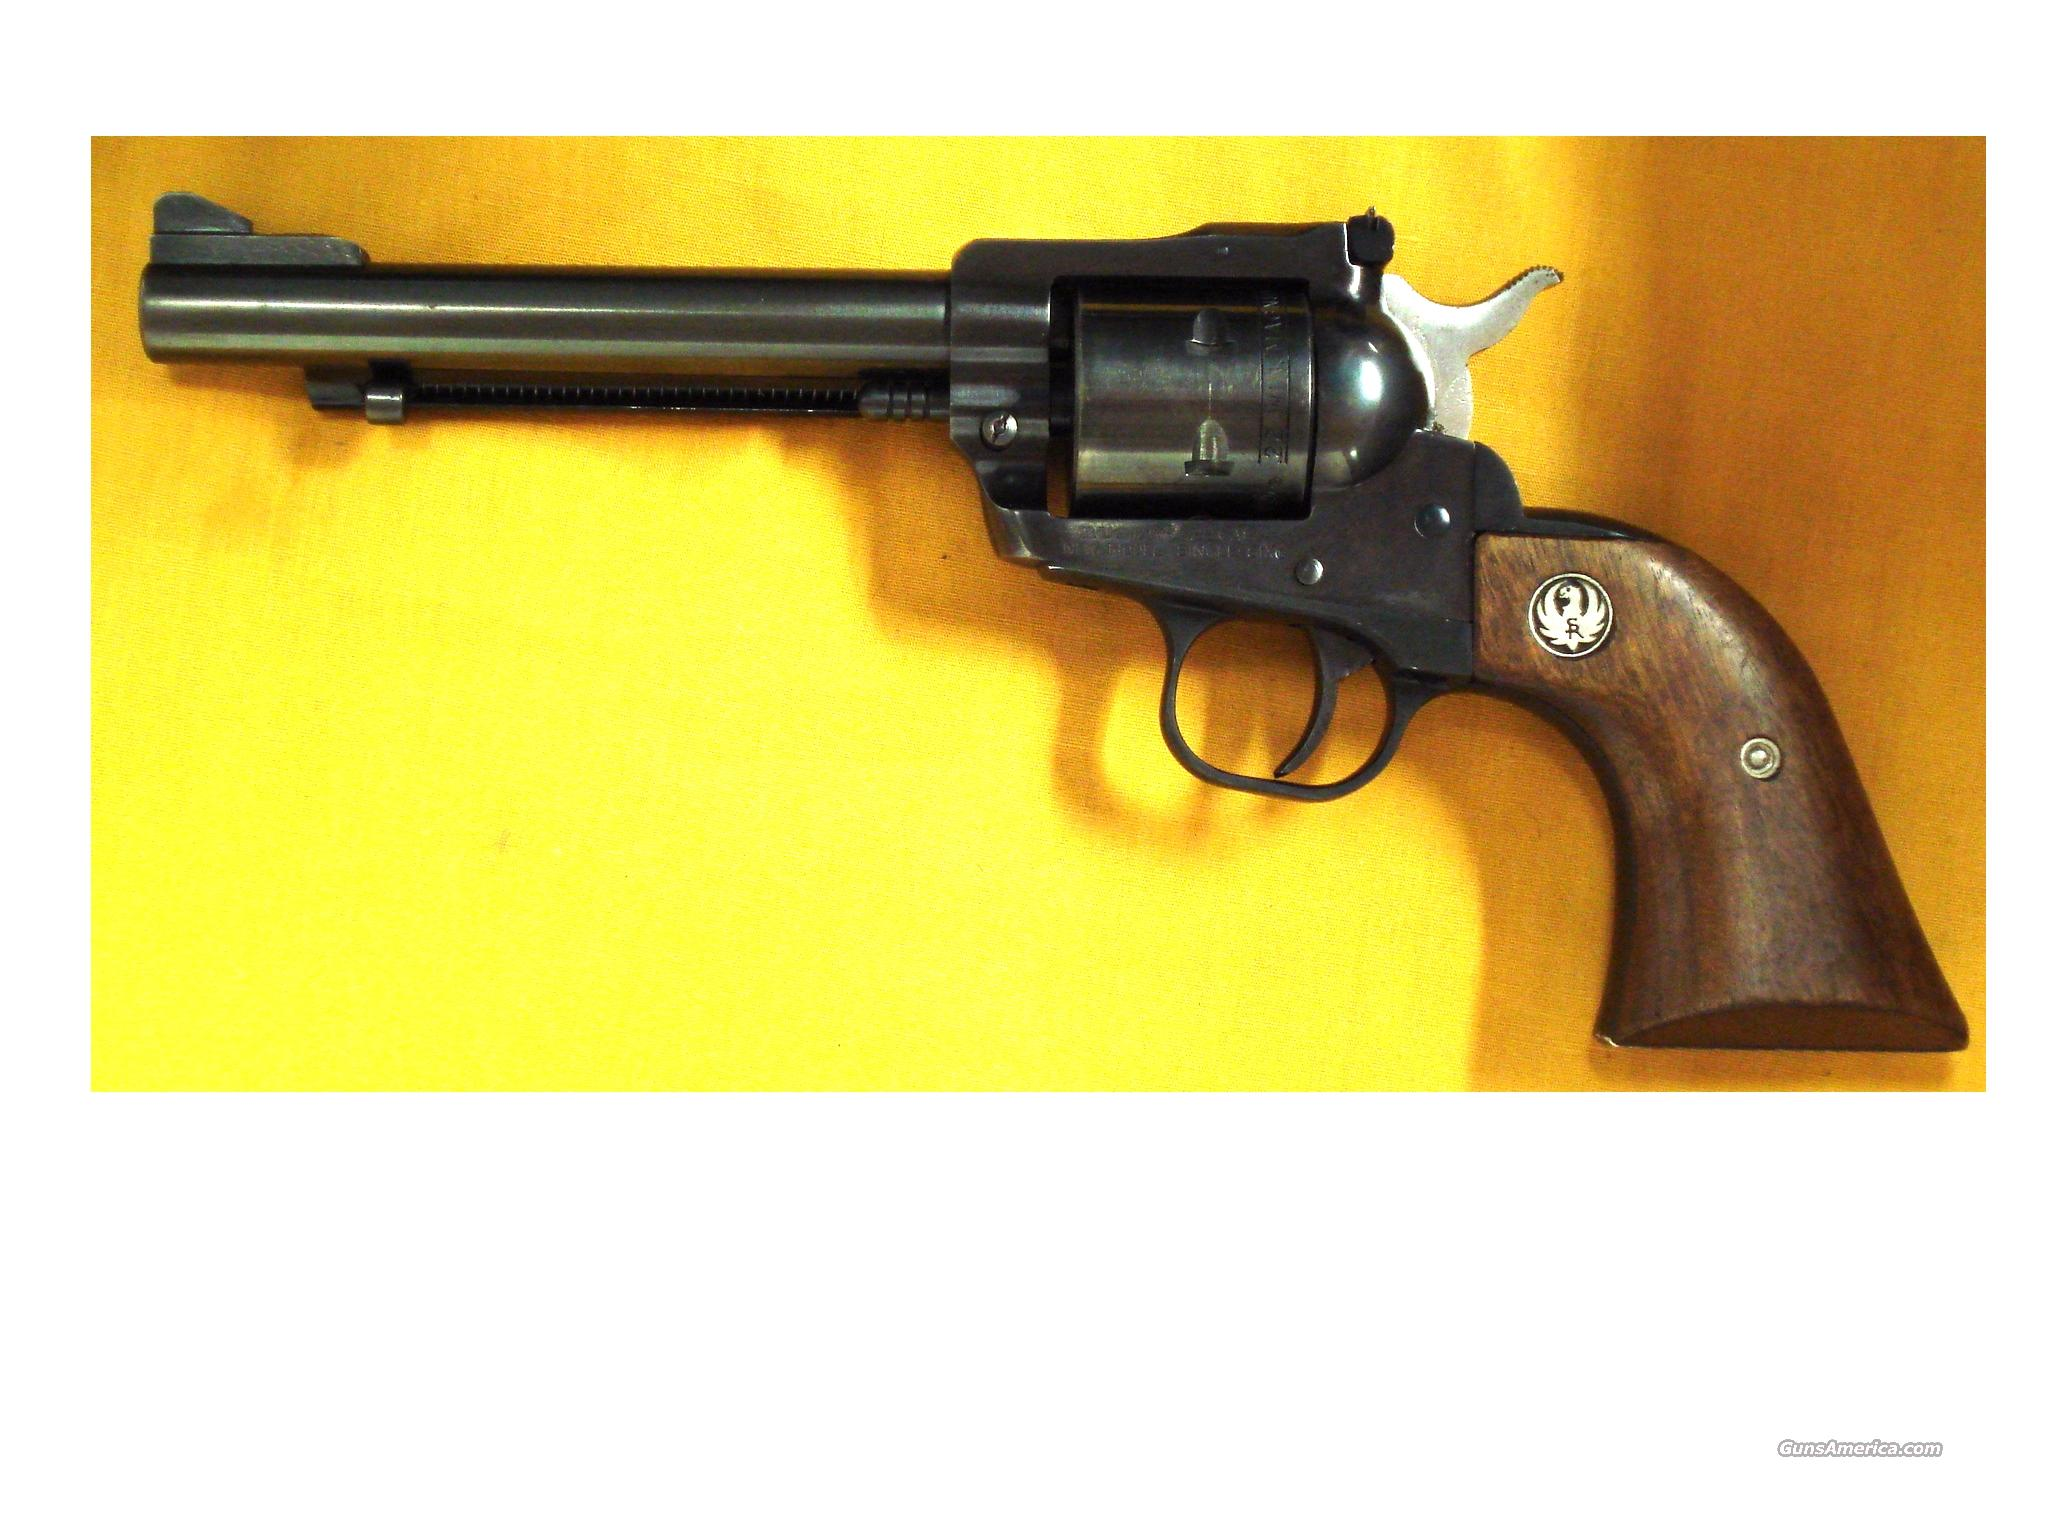 "RUGER NM SINGLE SIX .22MAG 5 1/2"" BBL  Guns > Pistols > Ruger Single Action Revolvers > Single Six Type"